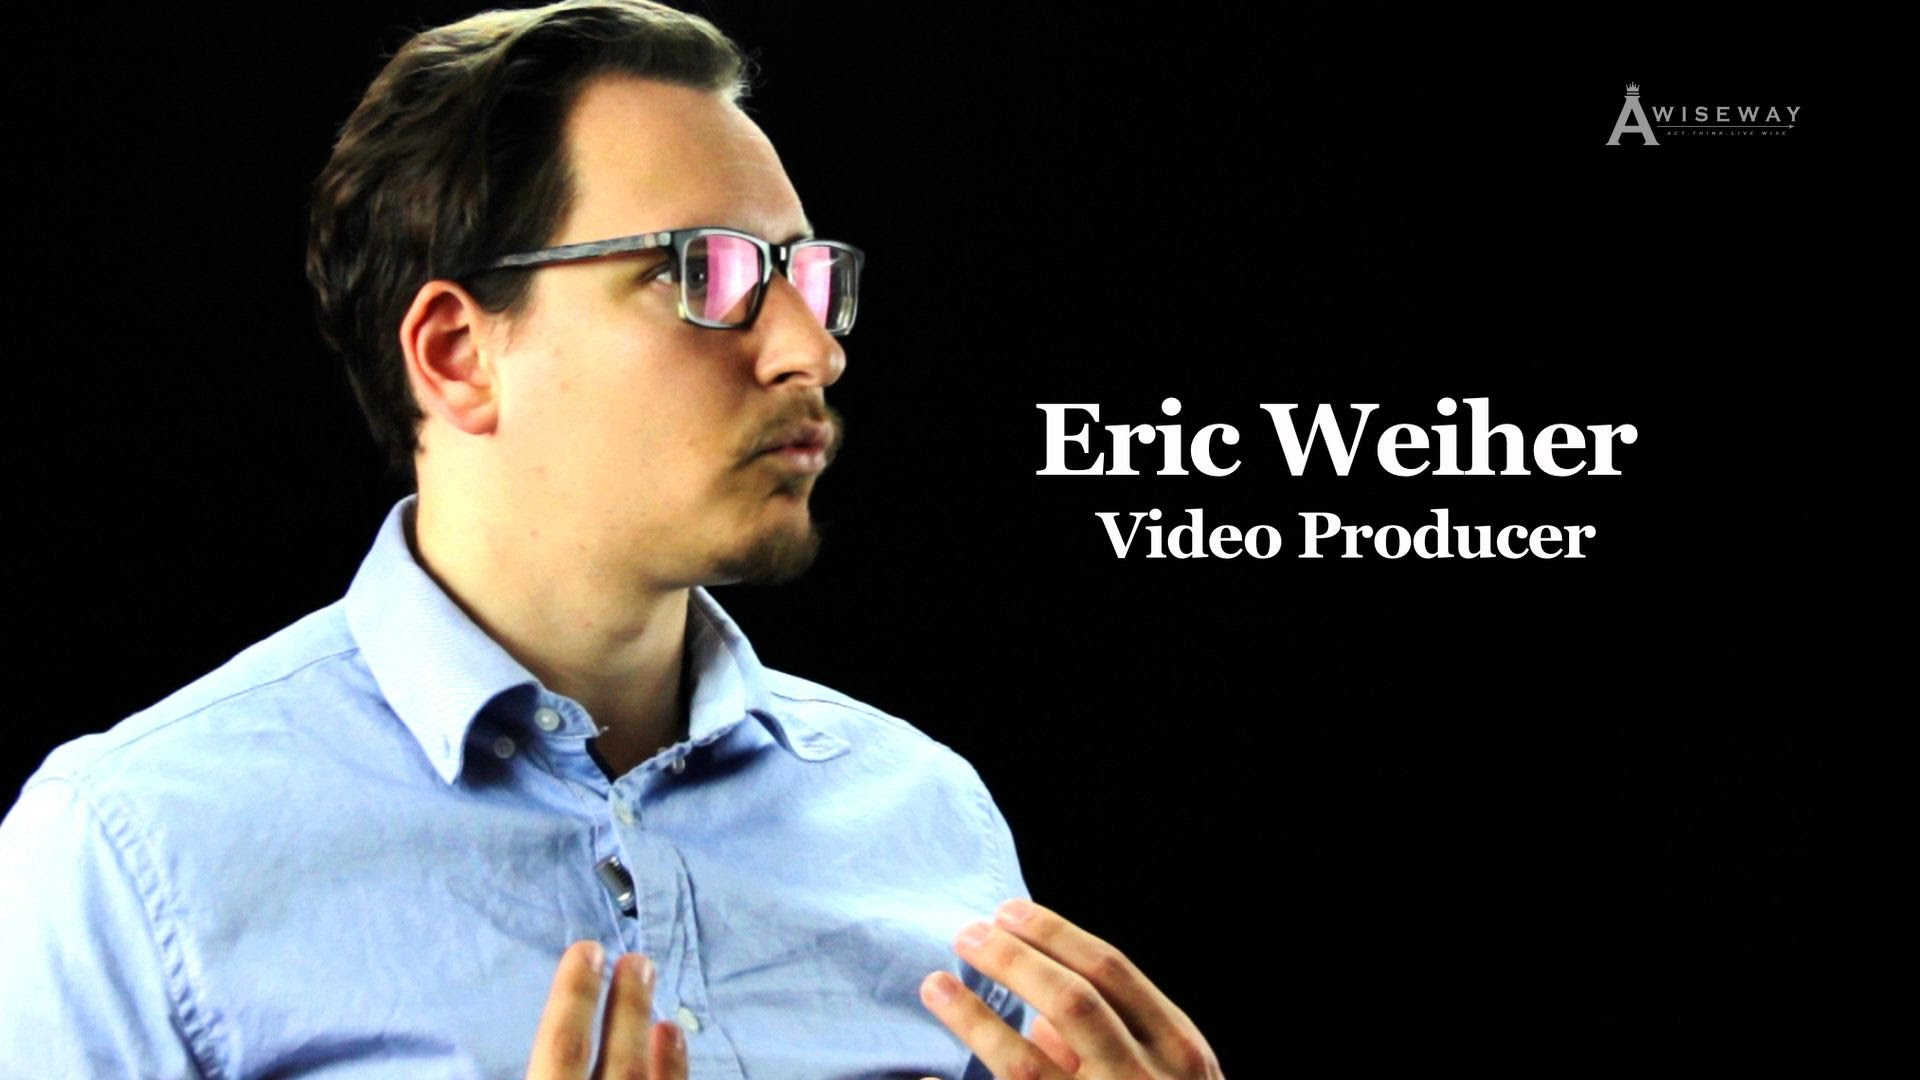 Why Organization is Important for a Video Producer